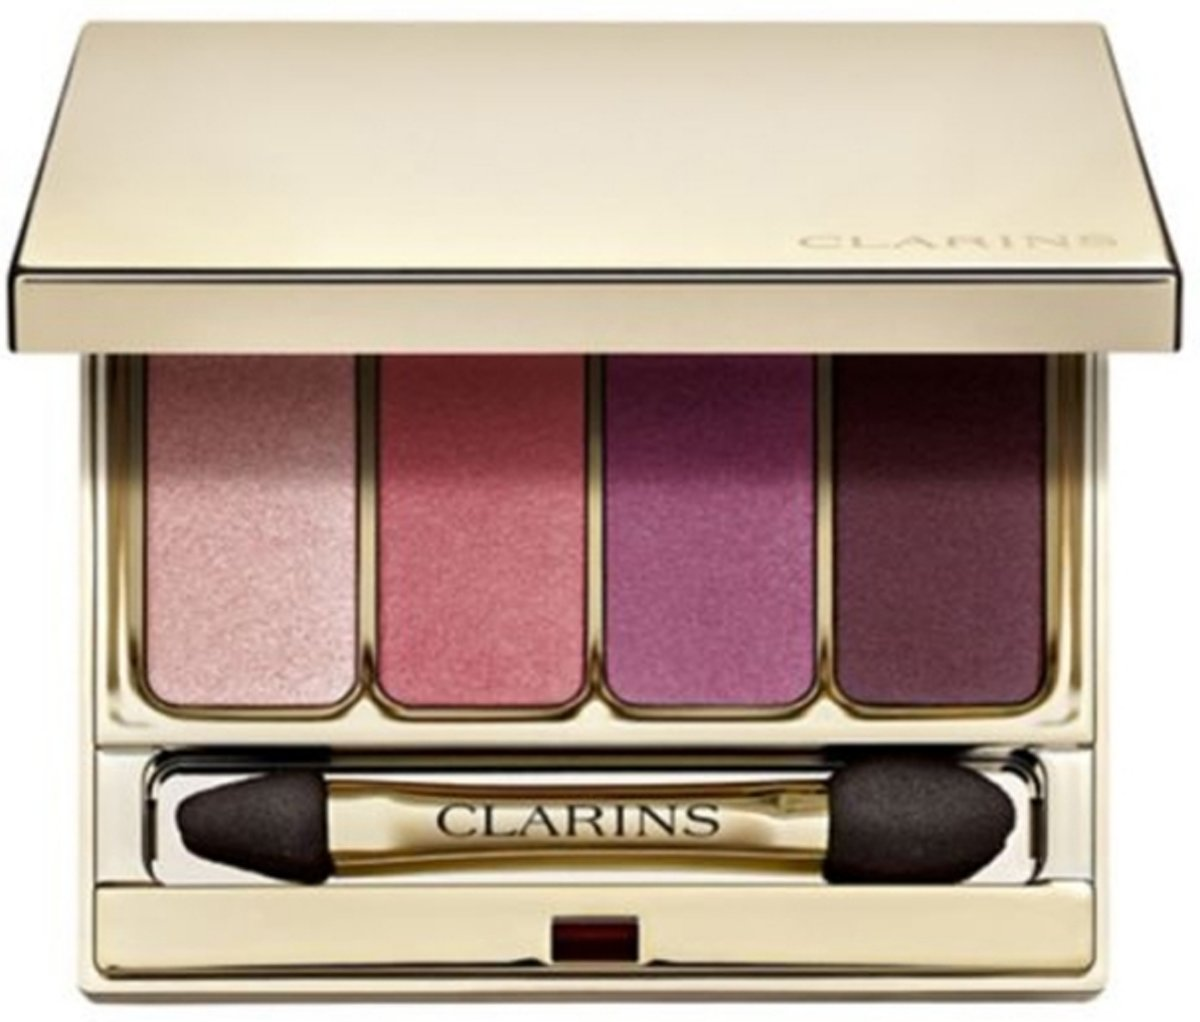 Clarins Palette 4 Couleurs Oogschaduwpalette 6.9 gr. - 07 - Lovely Rose